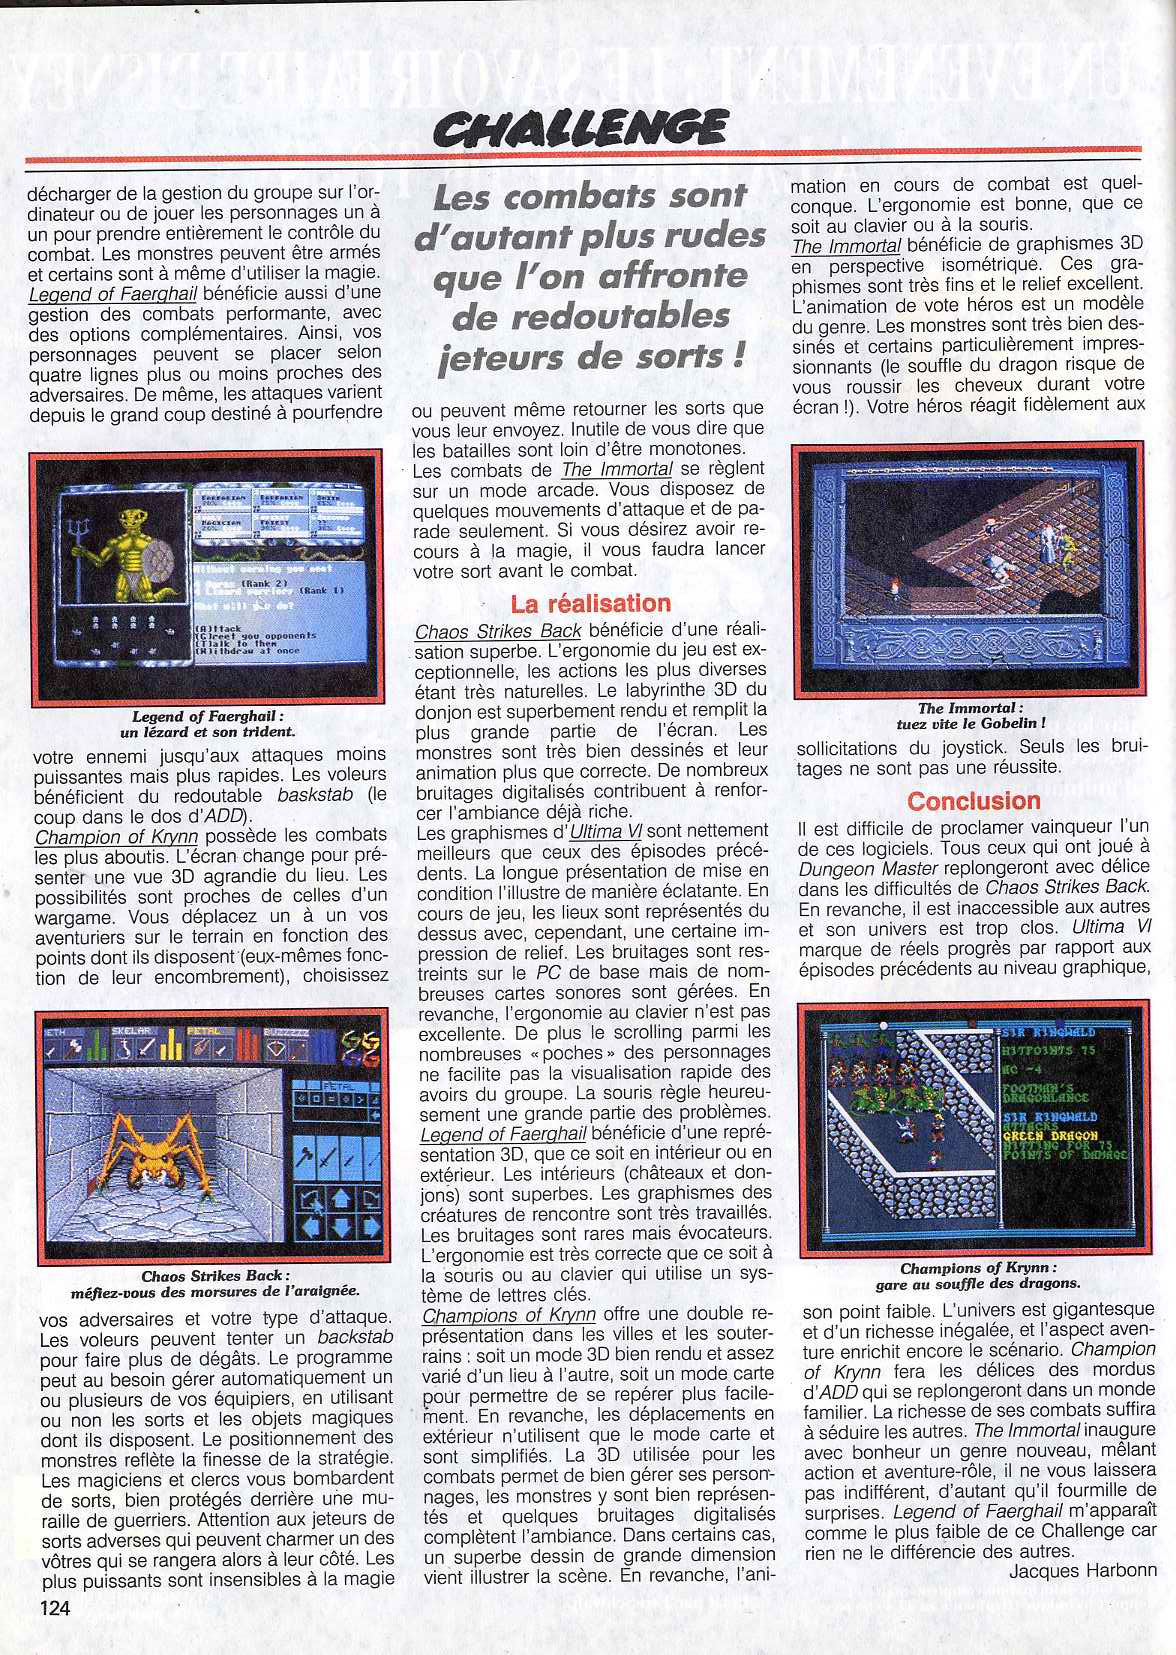 Chaos Strikes Back Article published in French magazine 'Tilt', Issue #83 November 1990, Page 124